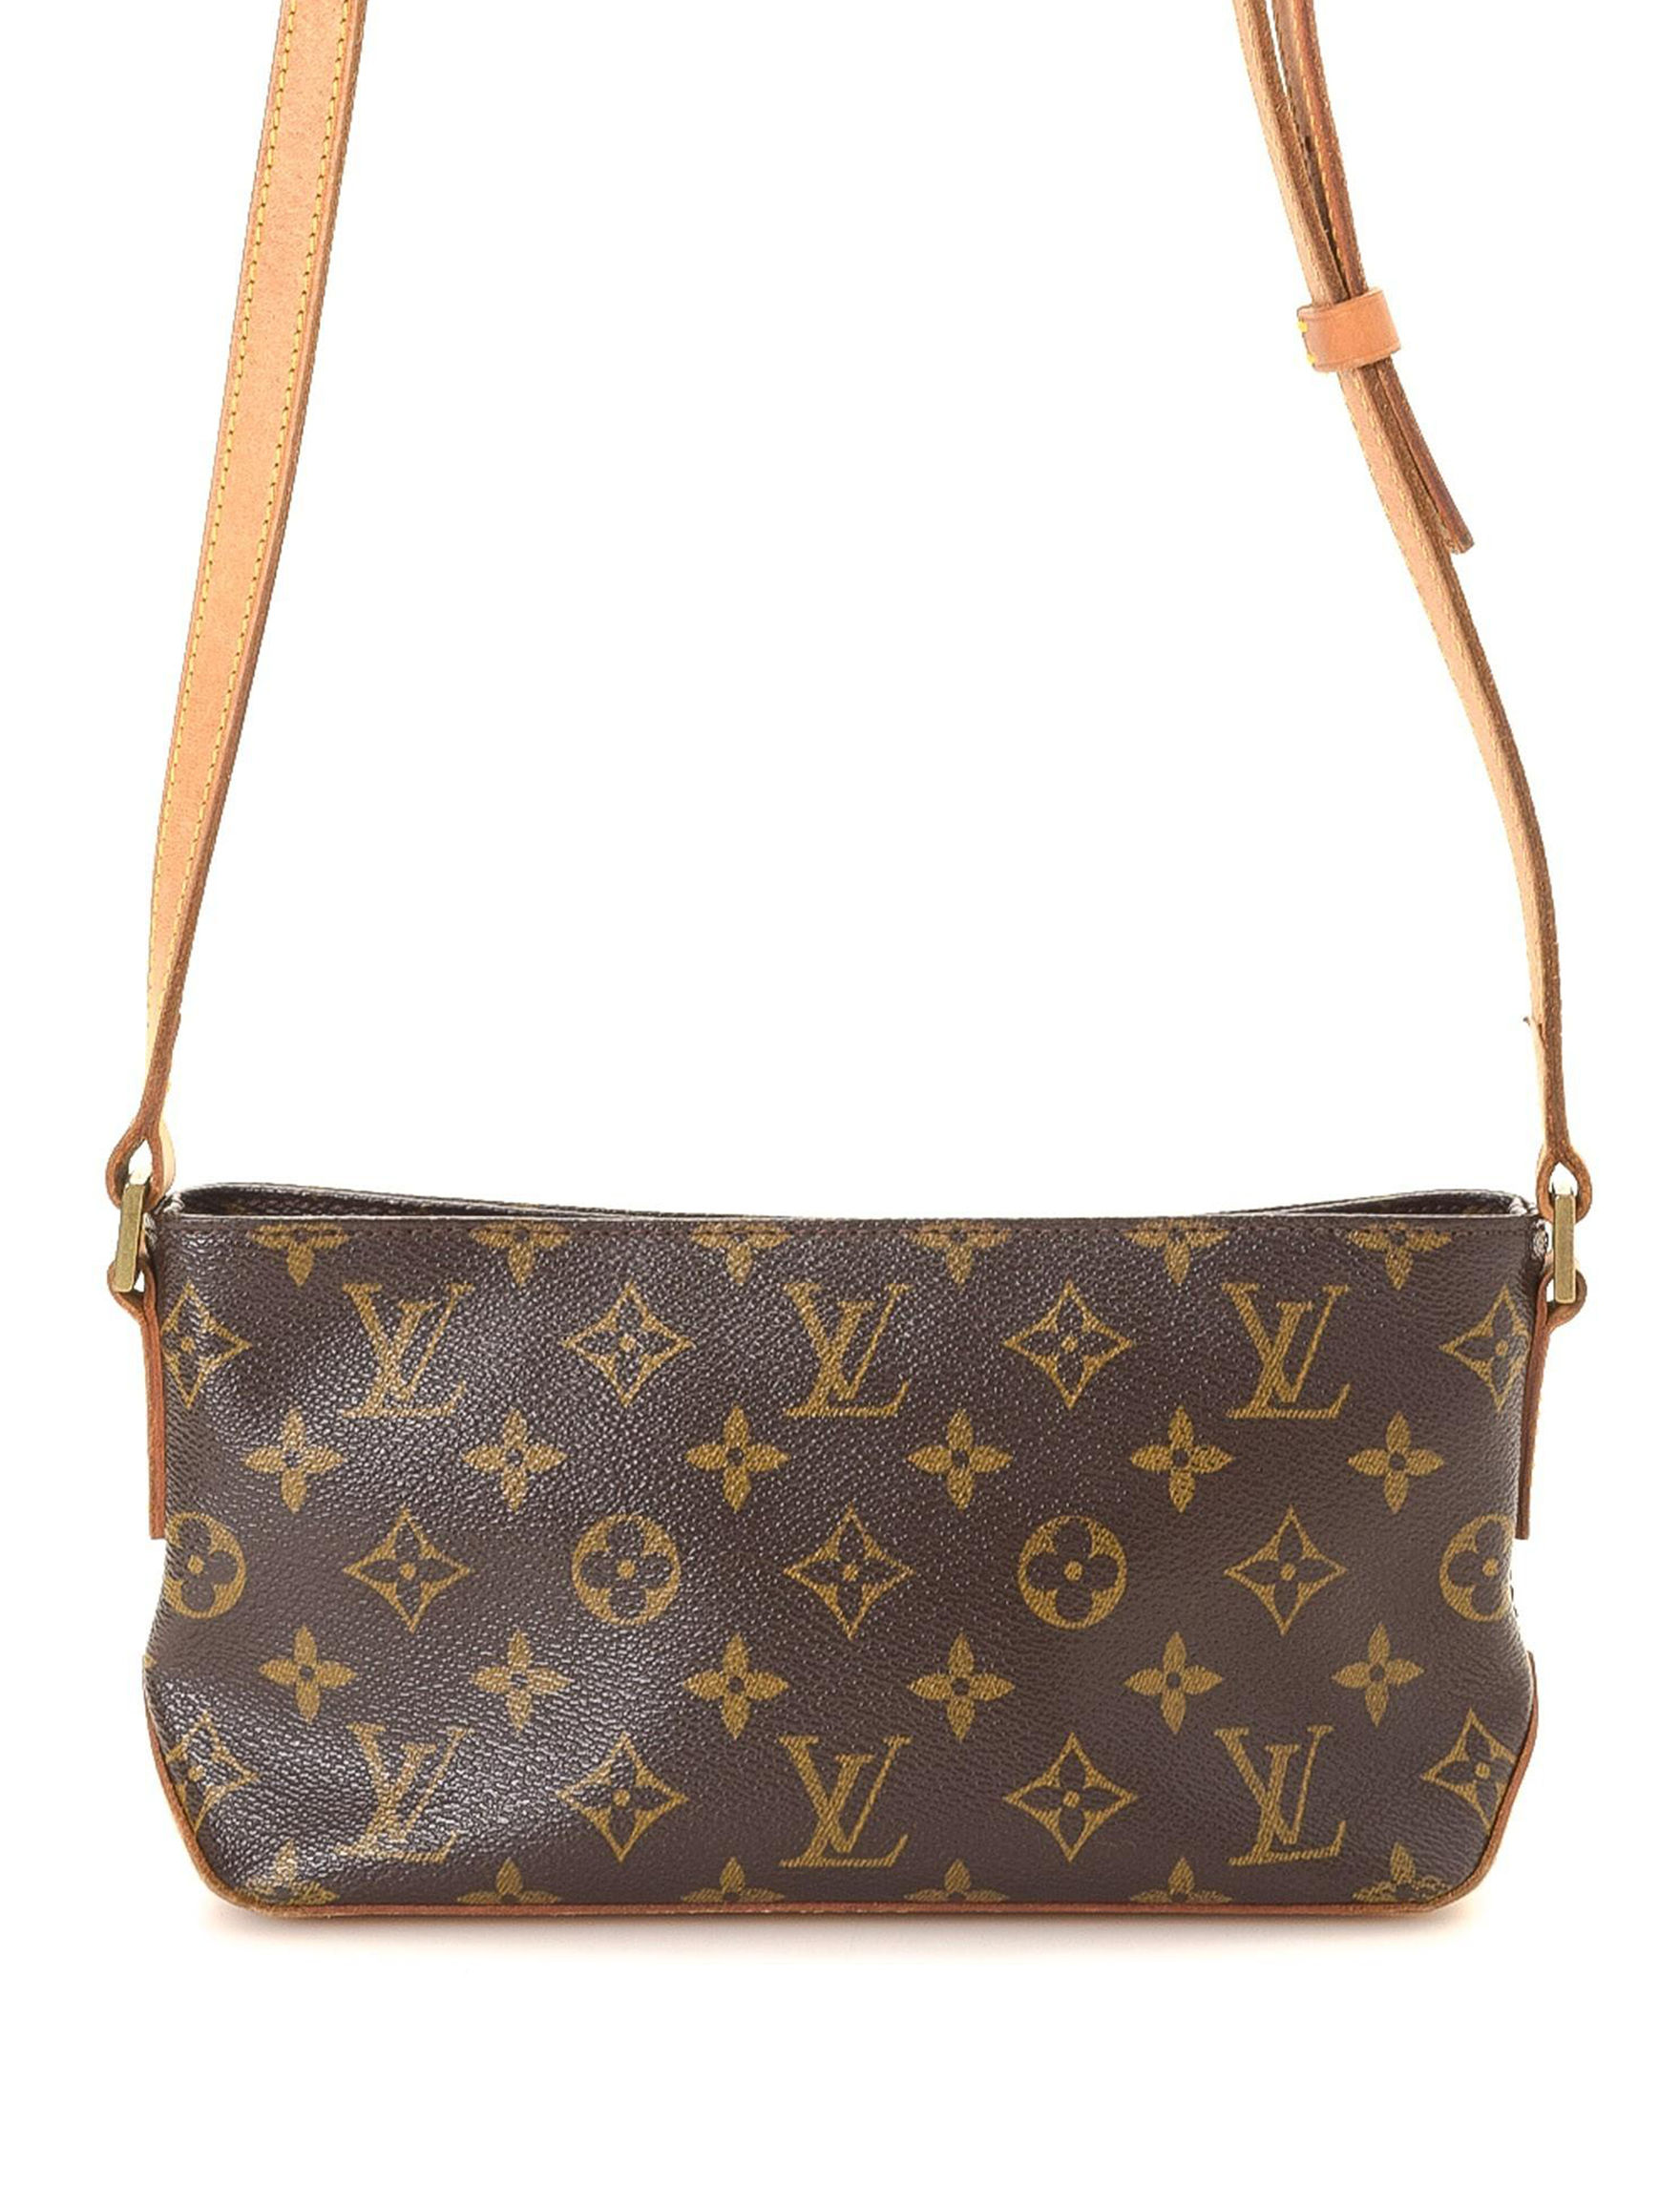 70a81400239 Luxury Pre-Owned Louis Vuitton Trotteur - FINAL SALE   Stage Stores